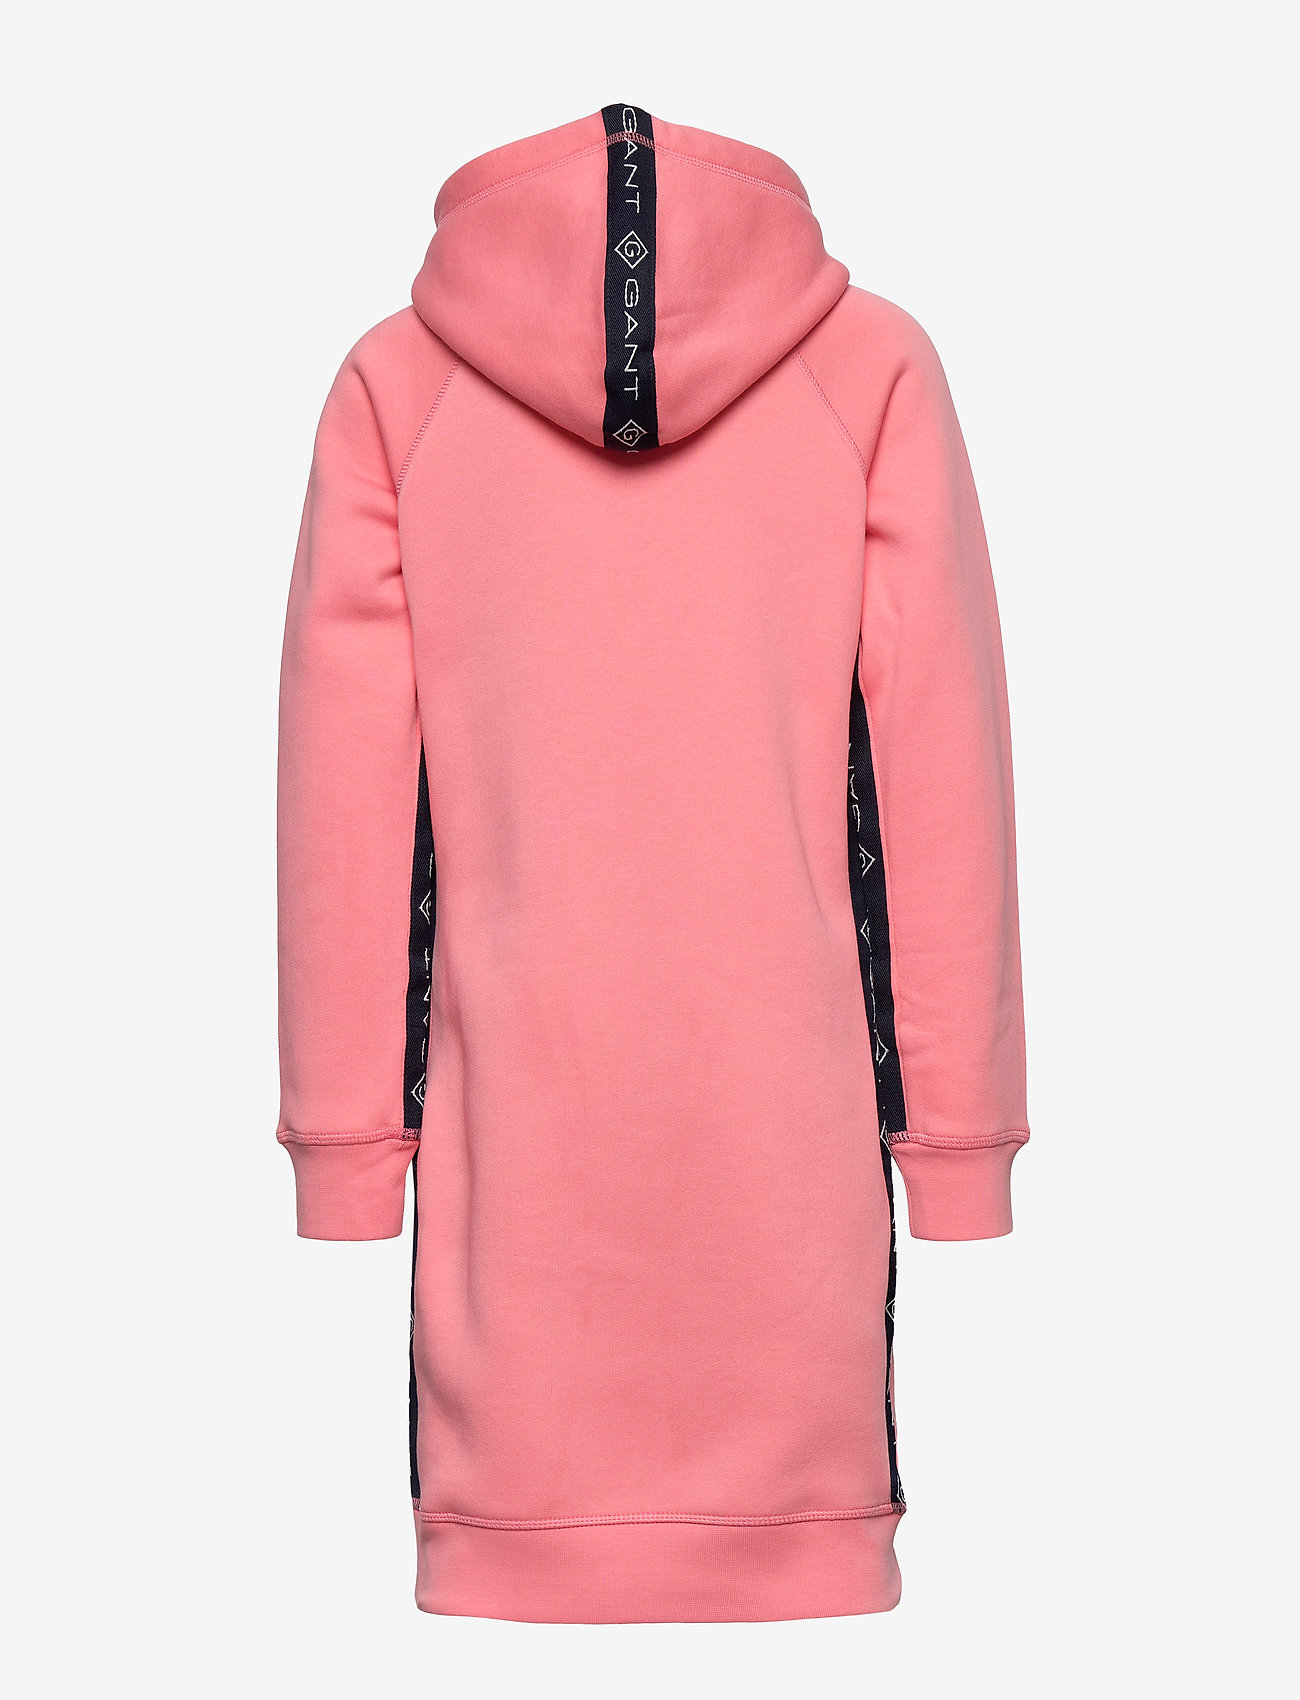 GANT - D1. LOCK UP STRIPE HOODIE DRESS - kjoler - strawberry pink - 1